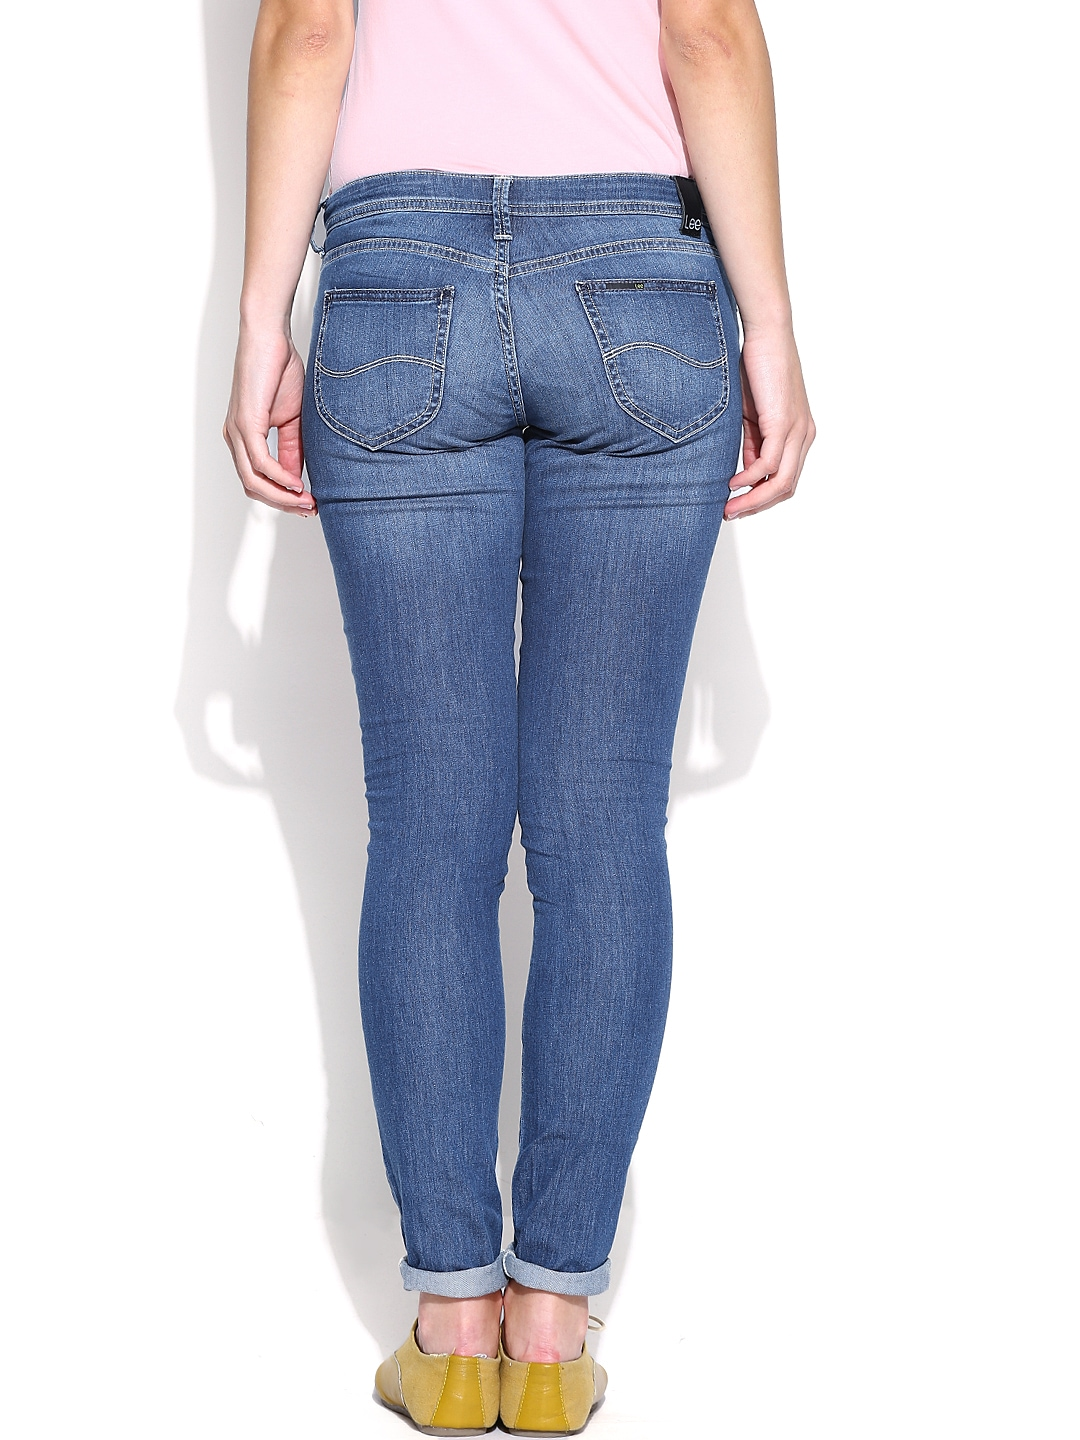 lee cooper jeans for women - photo #16